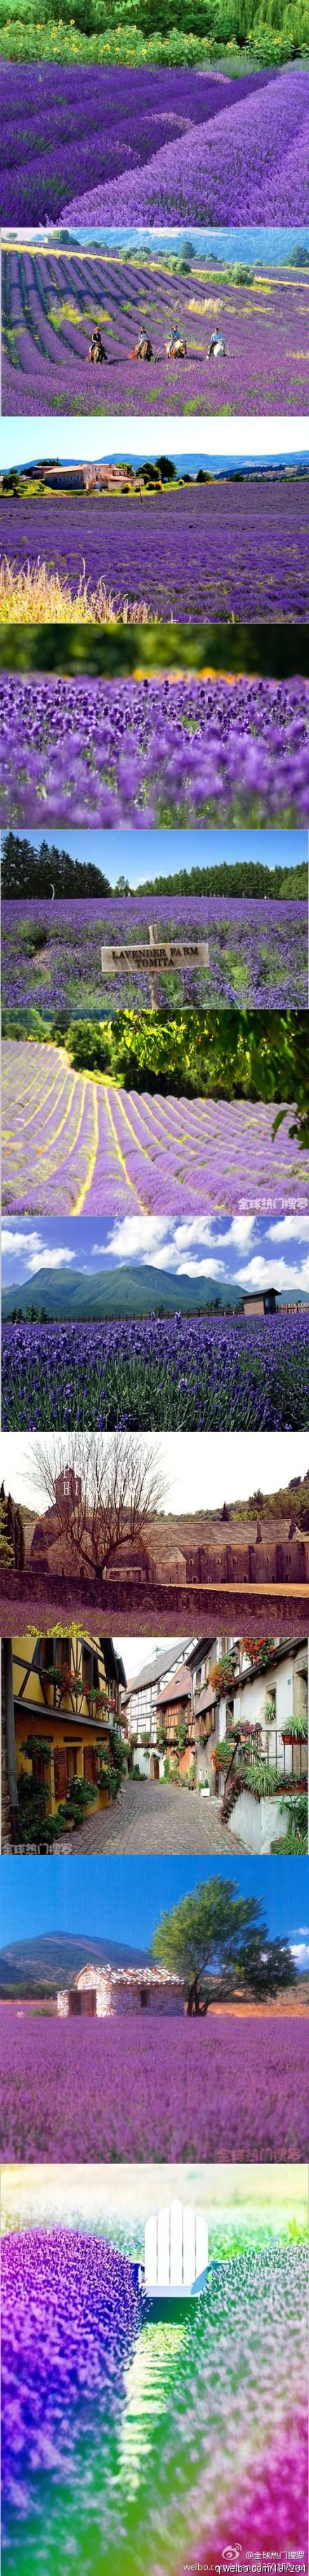 There are locations in New Zealand's South Island that are a purple haze…